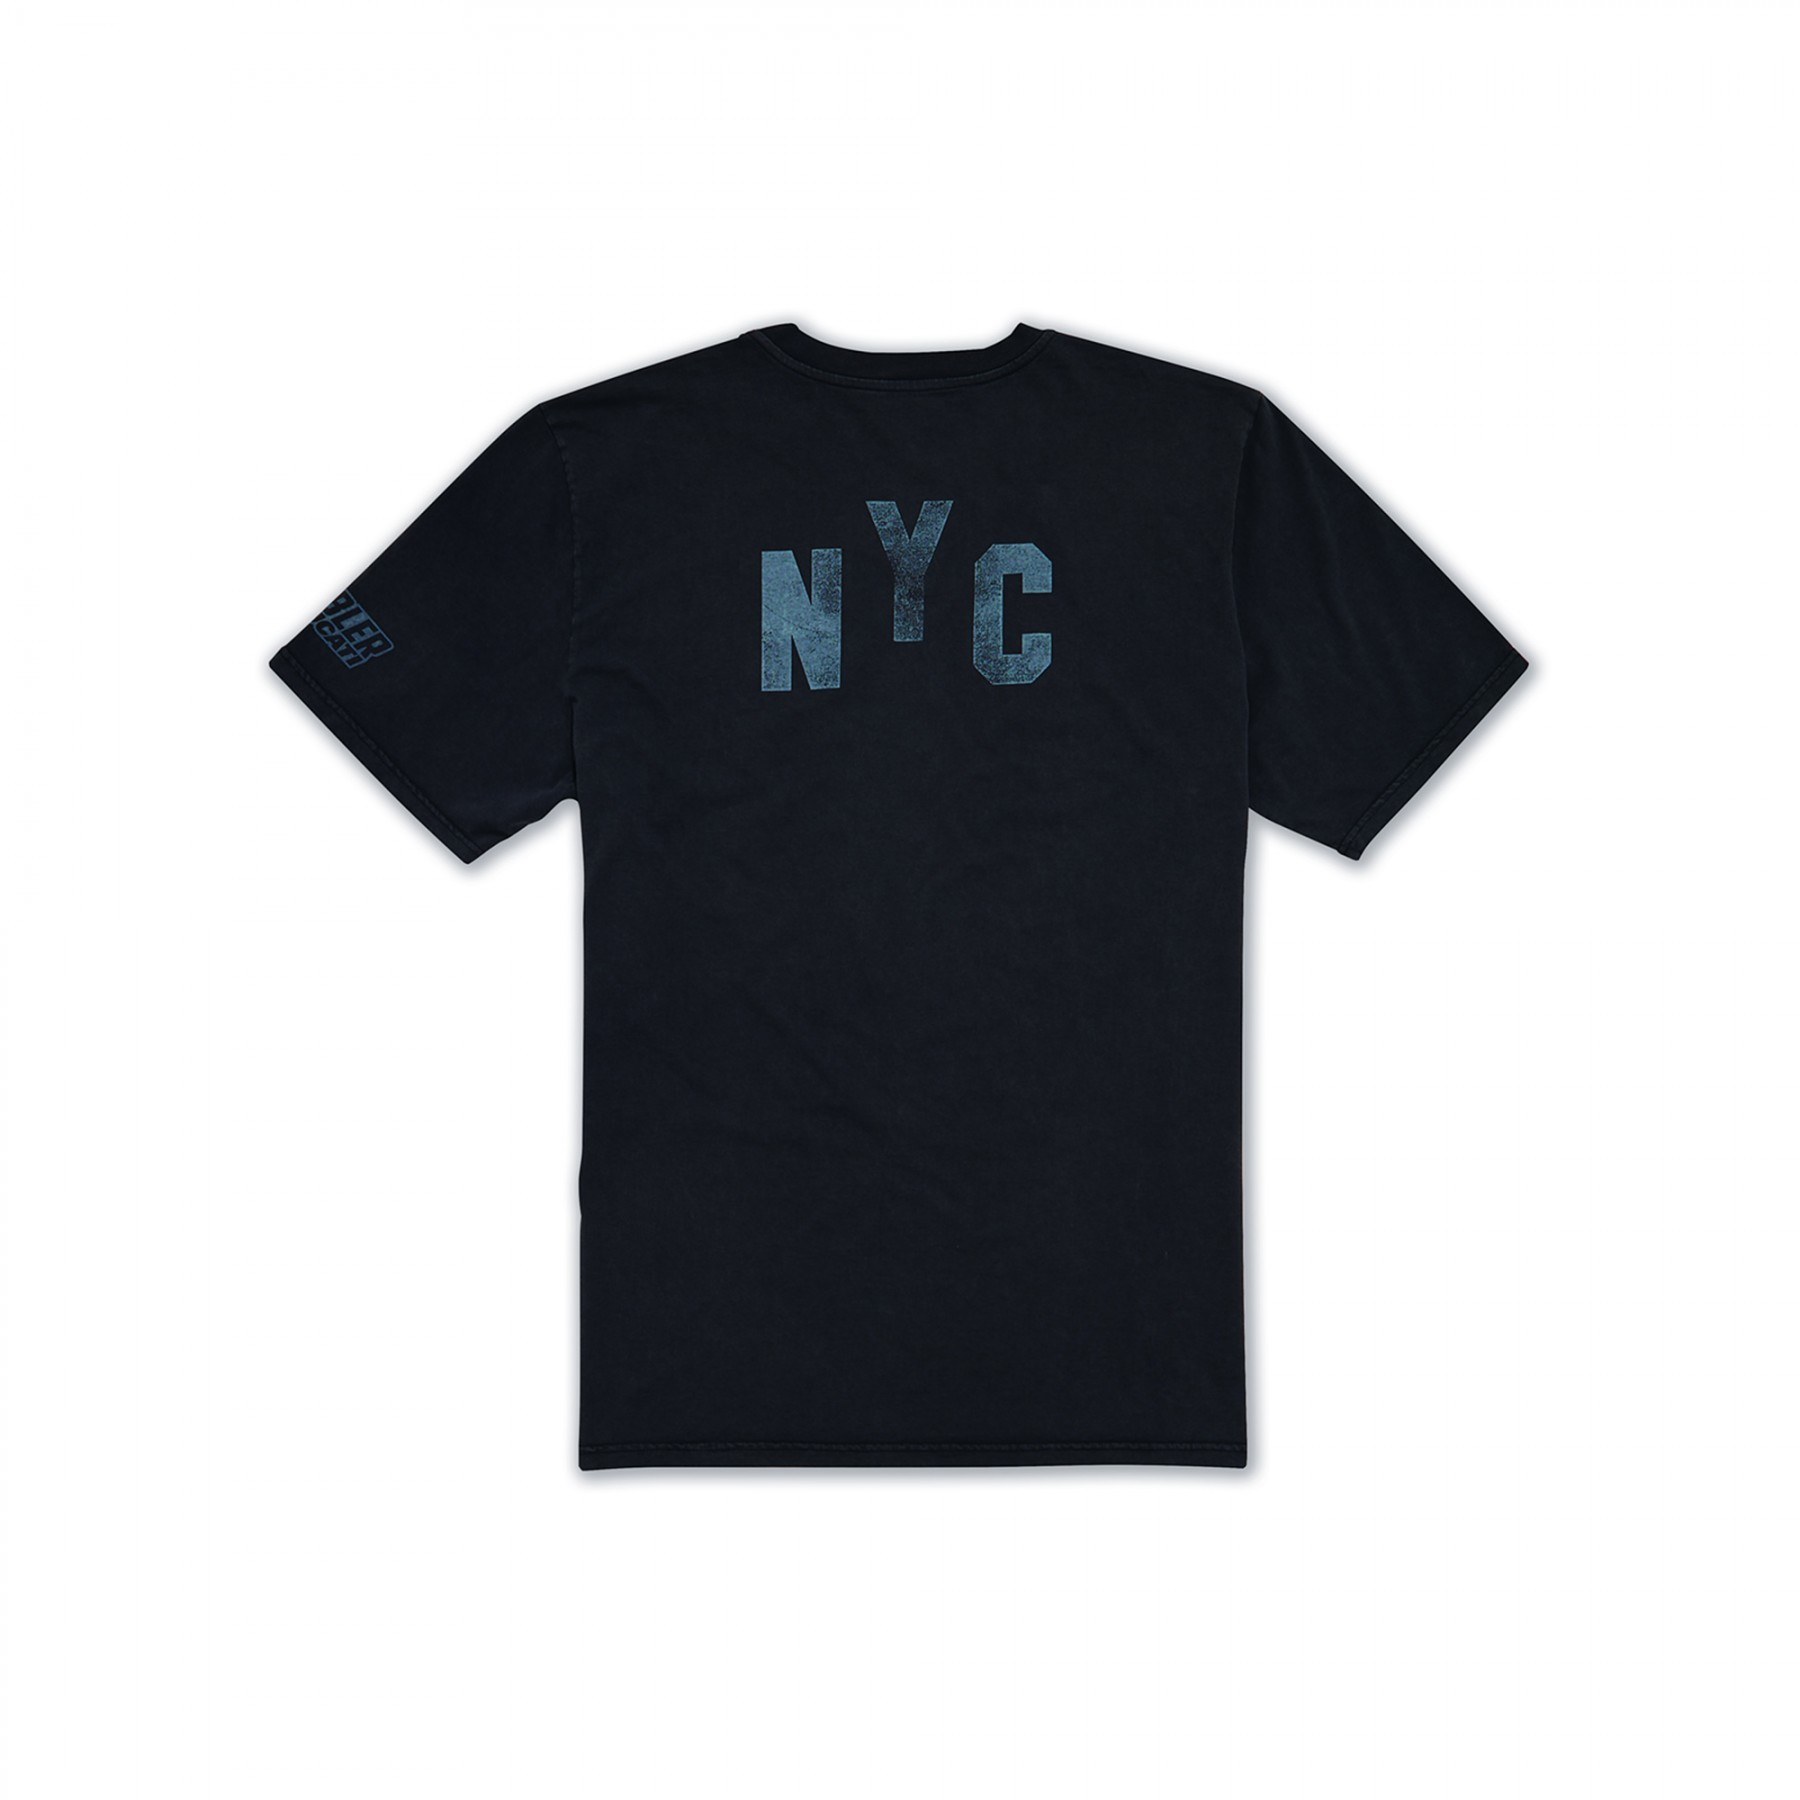 Brooklyn Cafe - T-shirt